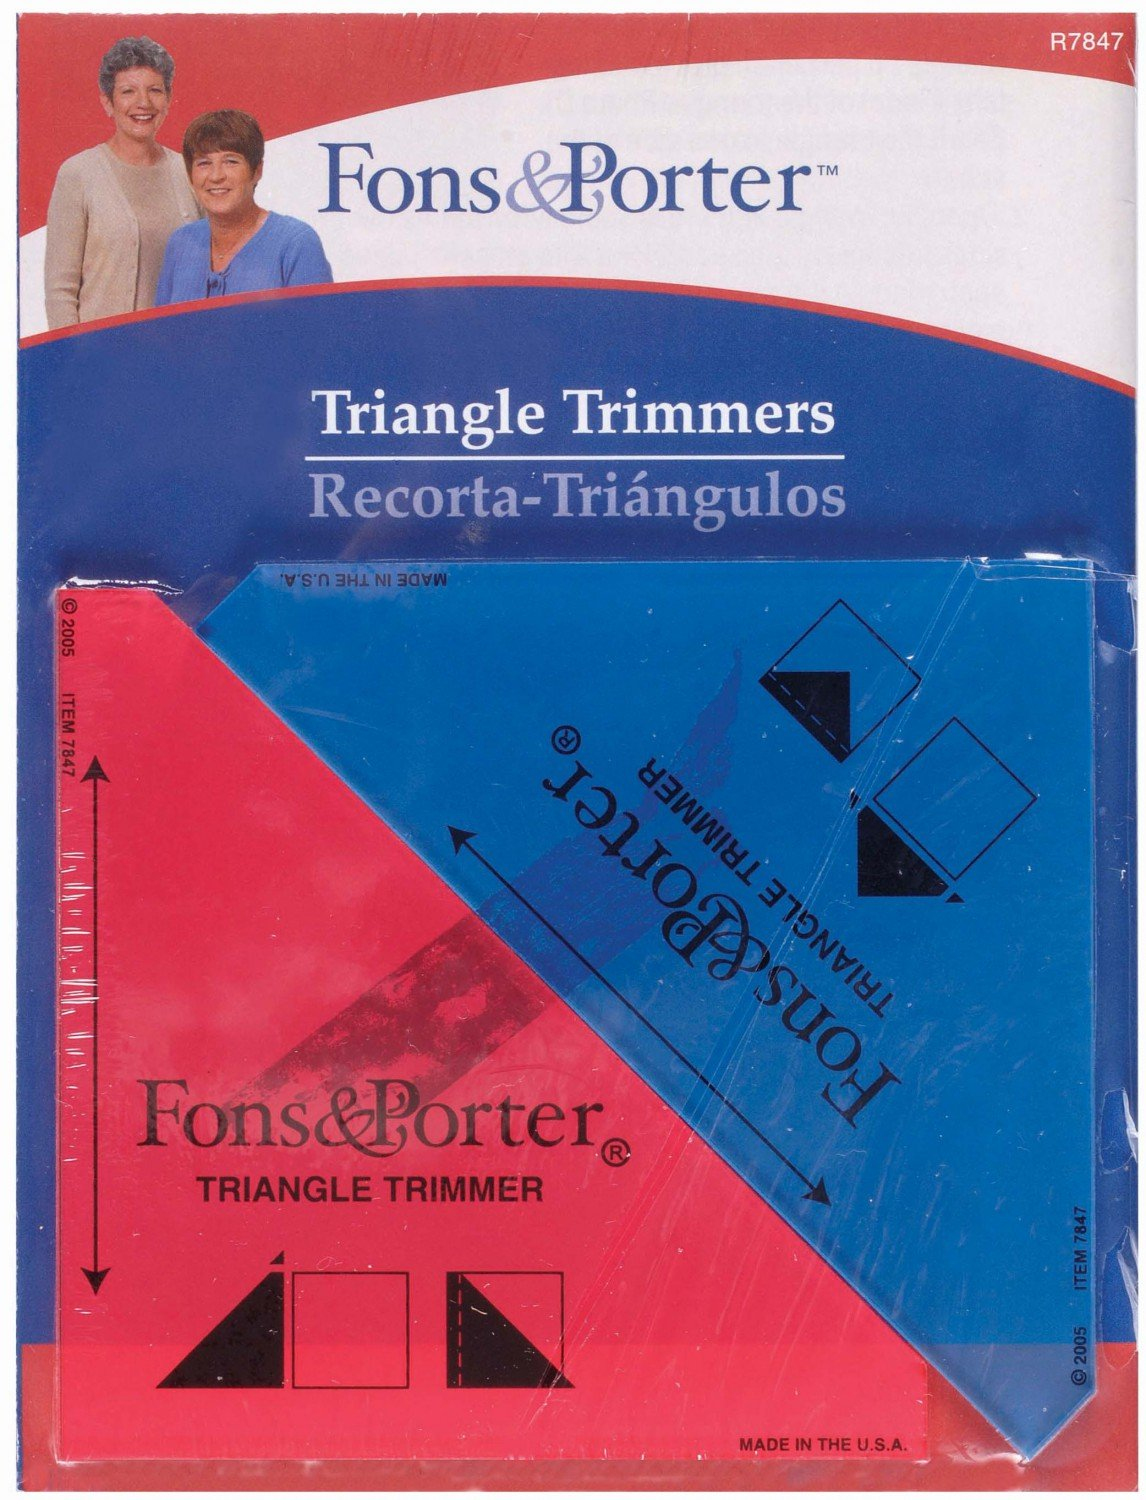 Ruler 1/2in and Inch square 2 piece Triangle Trimmers